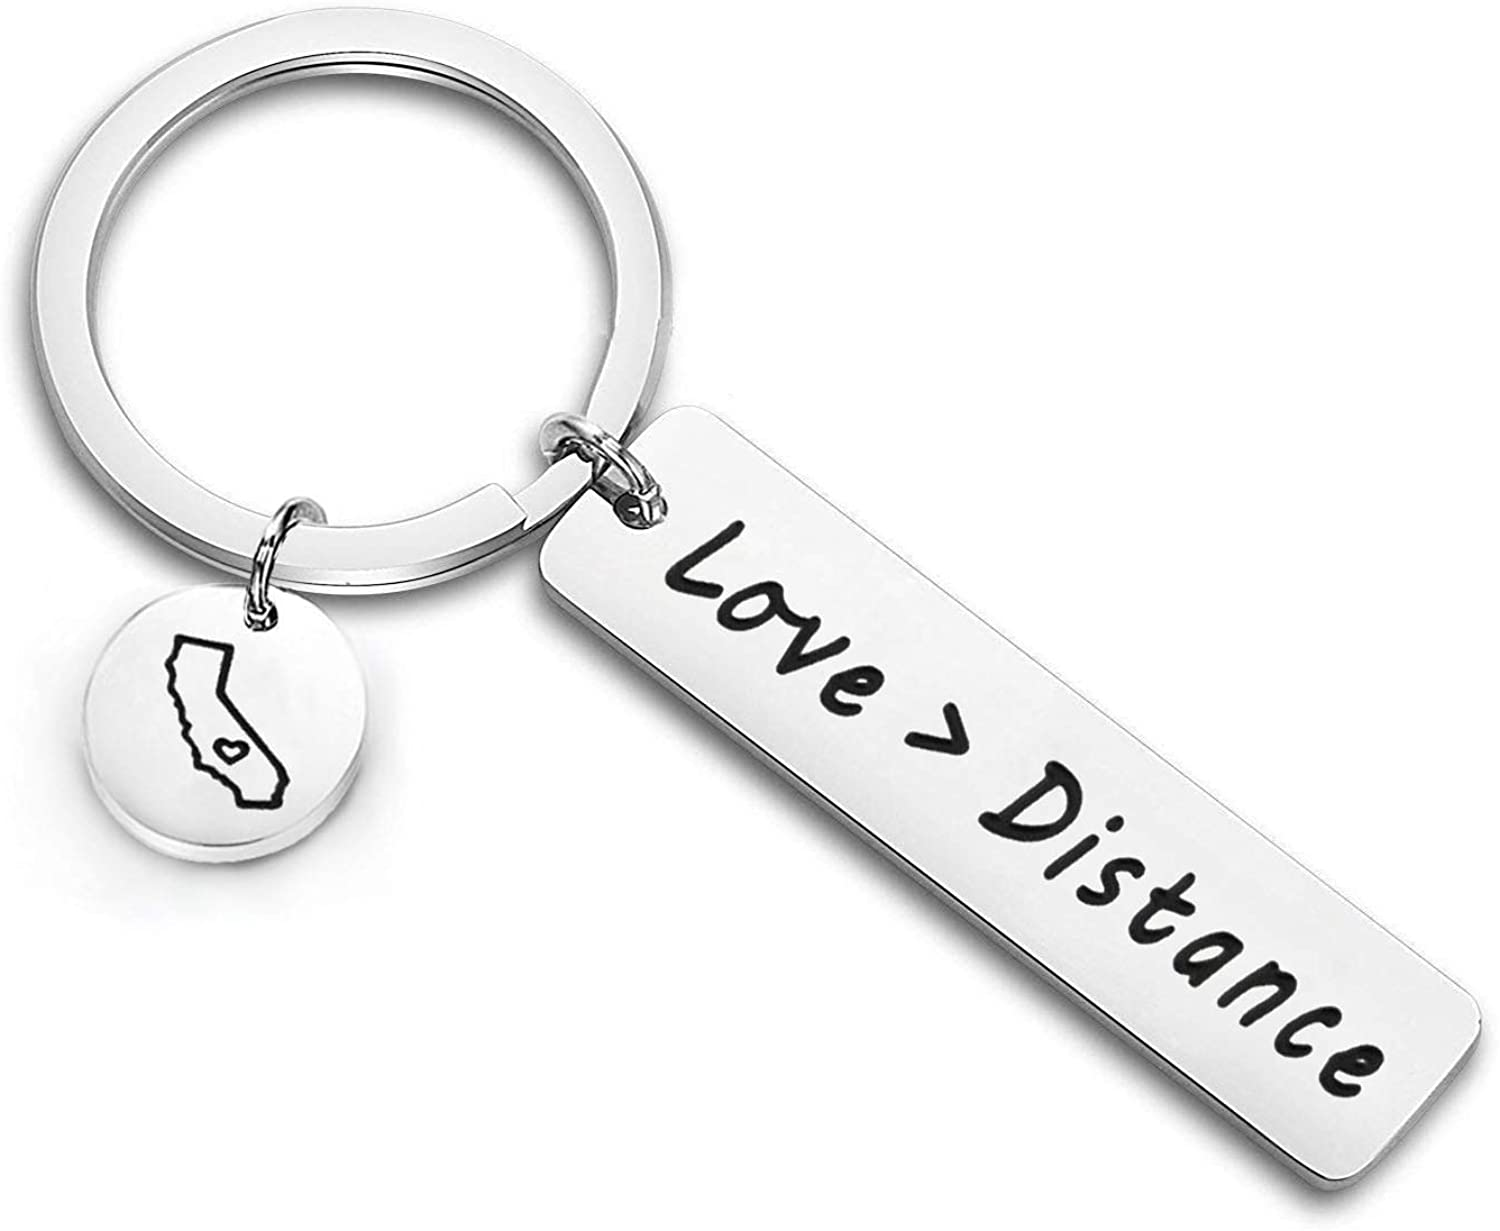 Zuo Bao Long Distance Relationship Necklace Love is Greater Than Distance Keyring Boyfriend Gift Girlfriend Gift Going Away Gift State Necklace